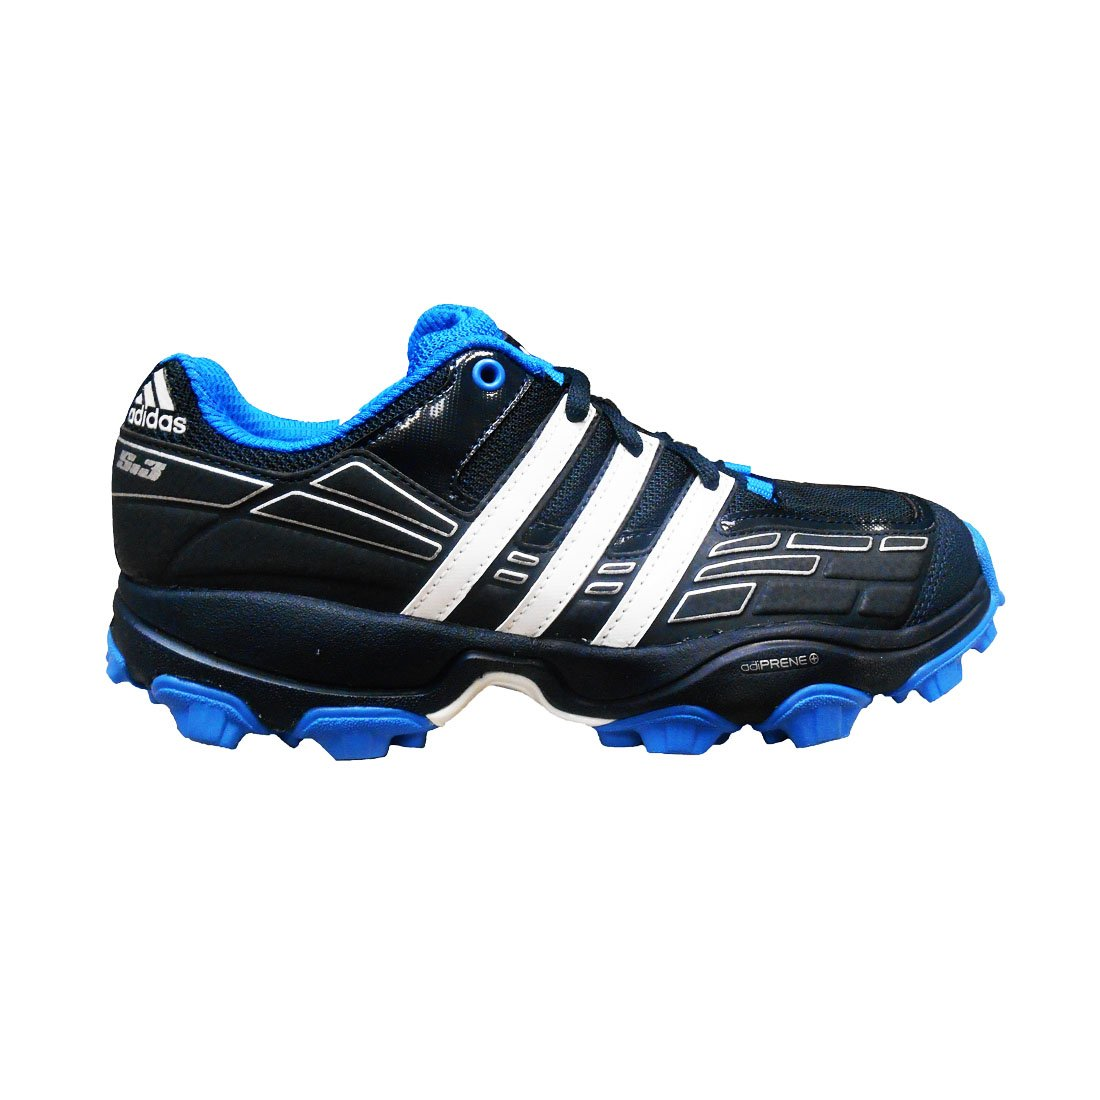 adidas Men's Adistar S.3 Field Hockey Shoes Tech Onix/White/Bright Blue)